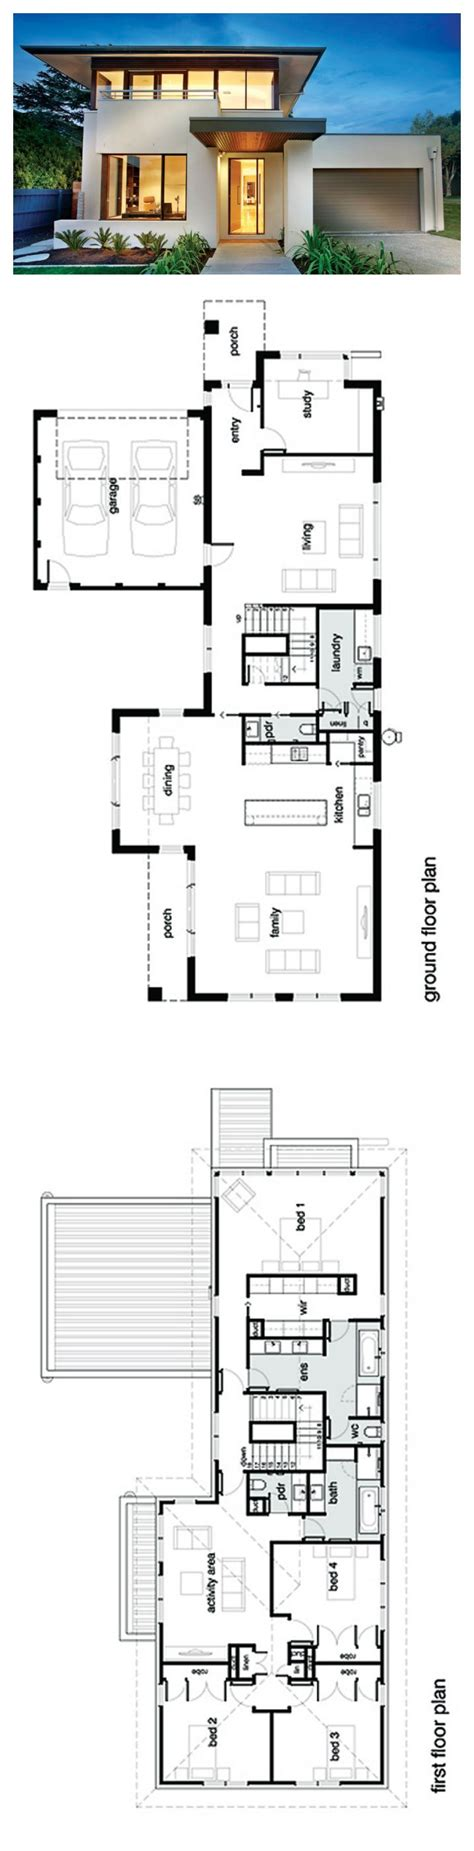 modern ground floor house plans the 25 best ideas about modern house plans on pinterest